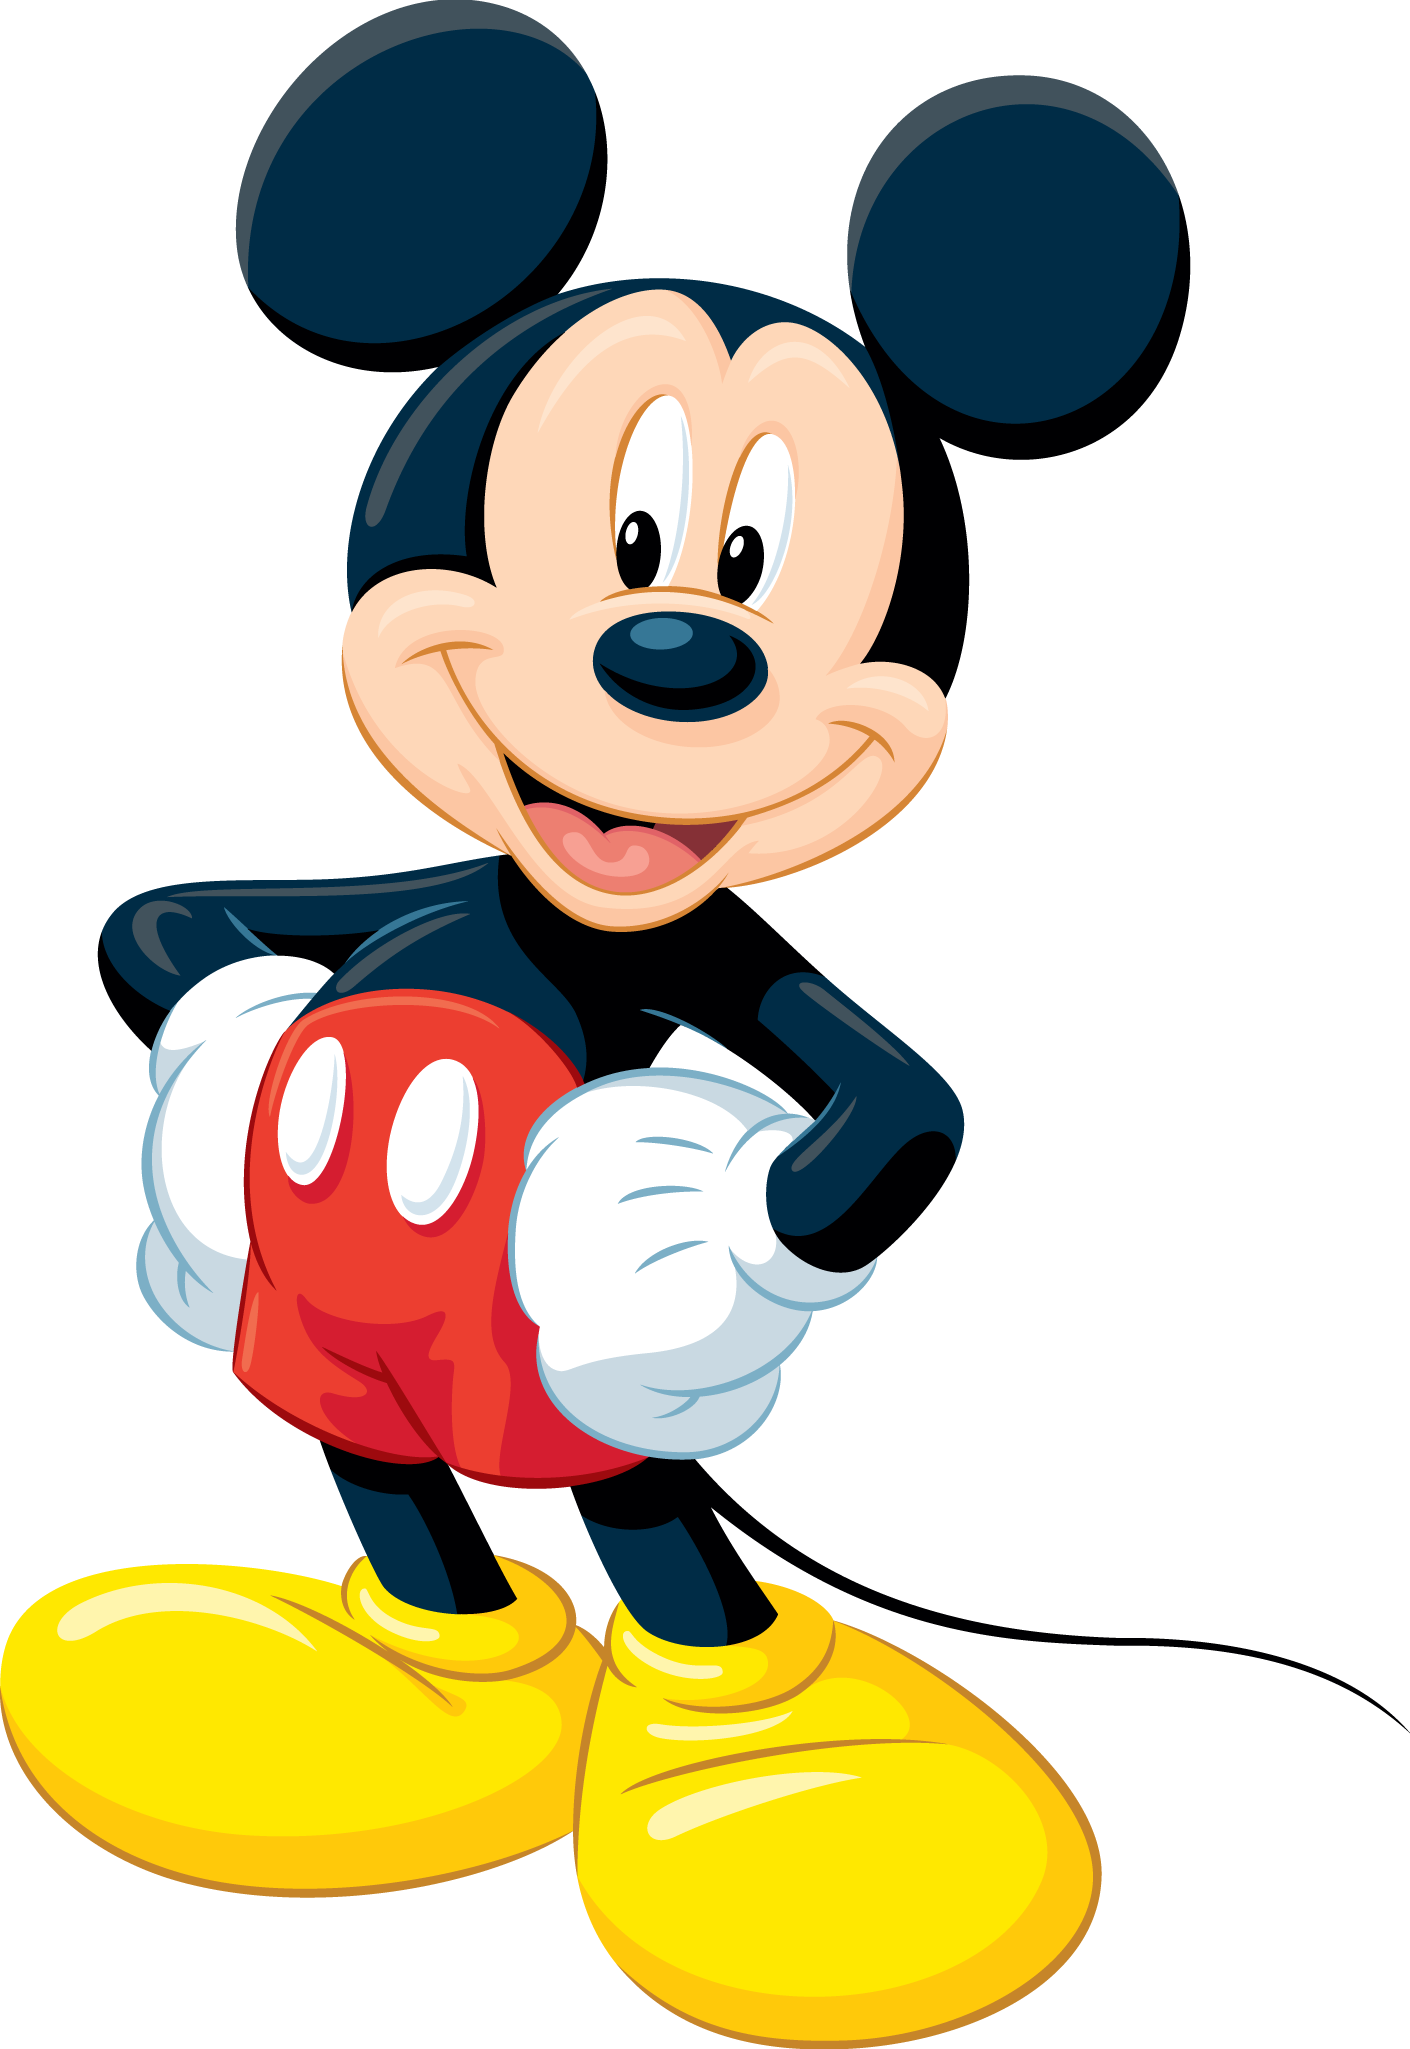 Shy clipart standing. Mickey mouse sammies nd